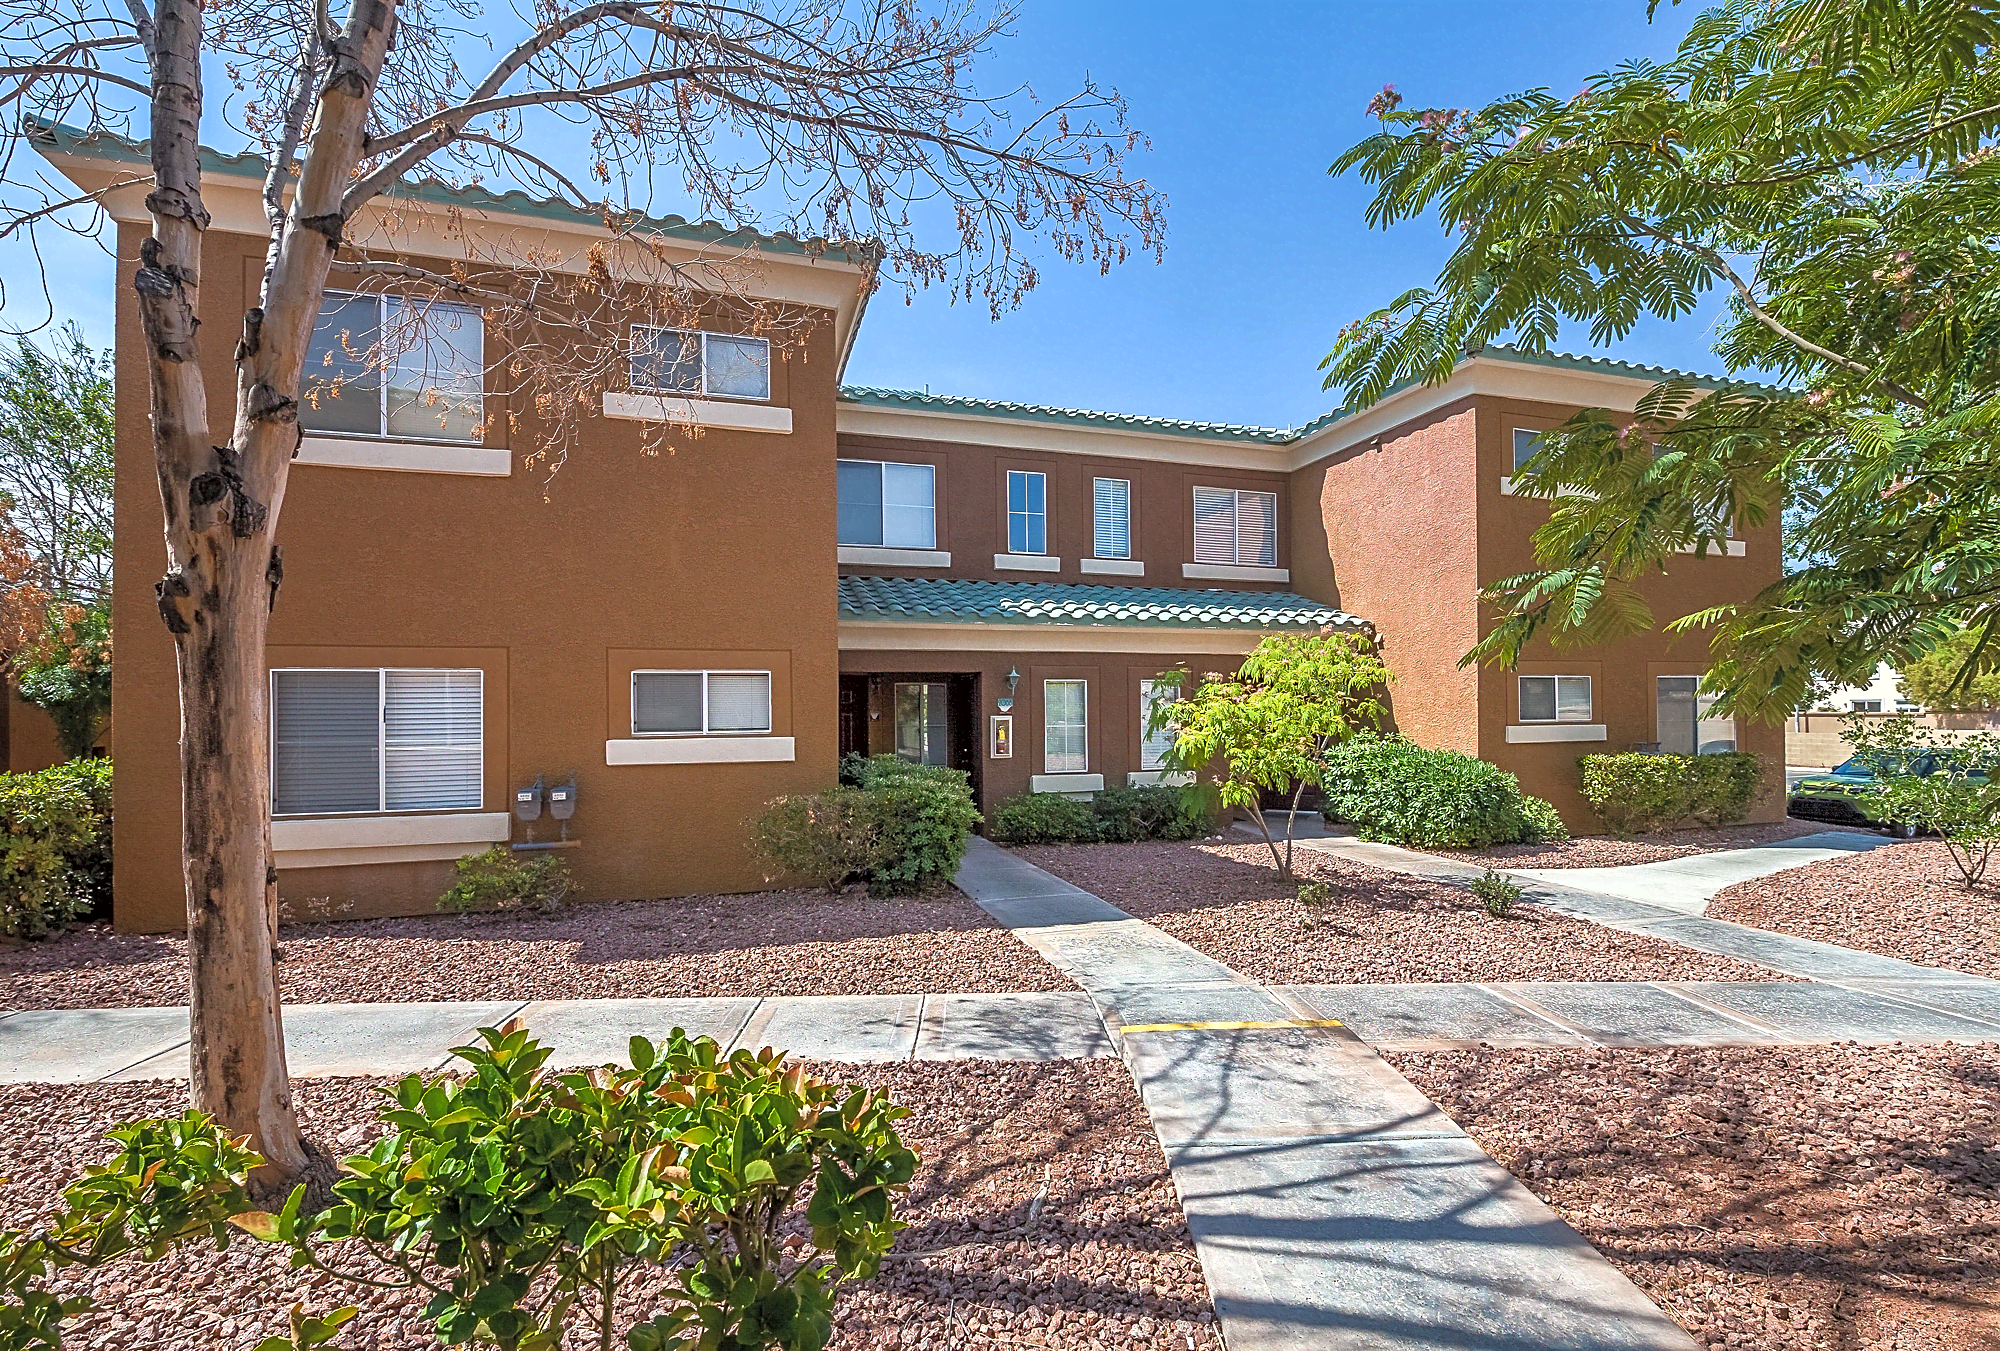 Apartments Near UNLV Durango Canyon for University of Nevada-Las Vegas Students in Las Vegas, NV